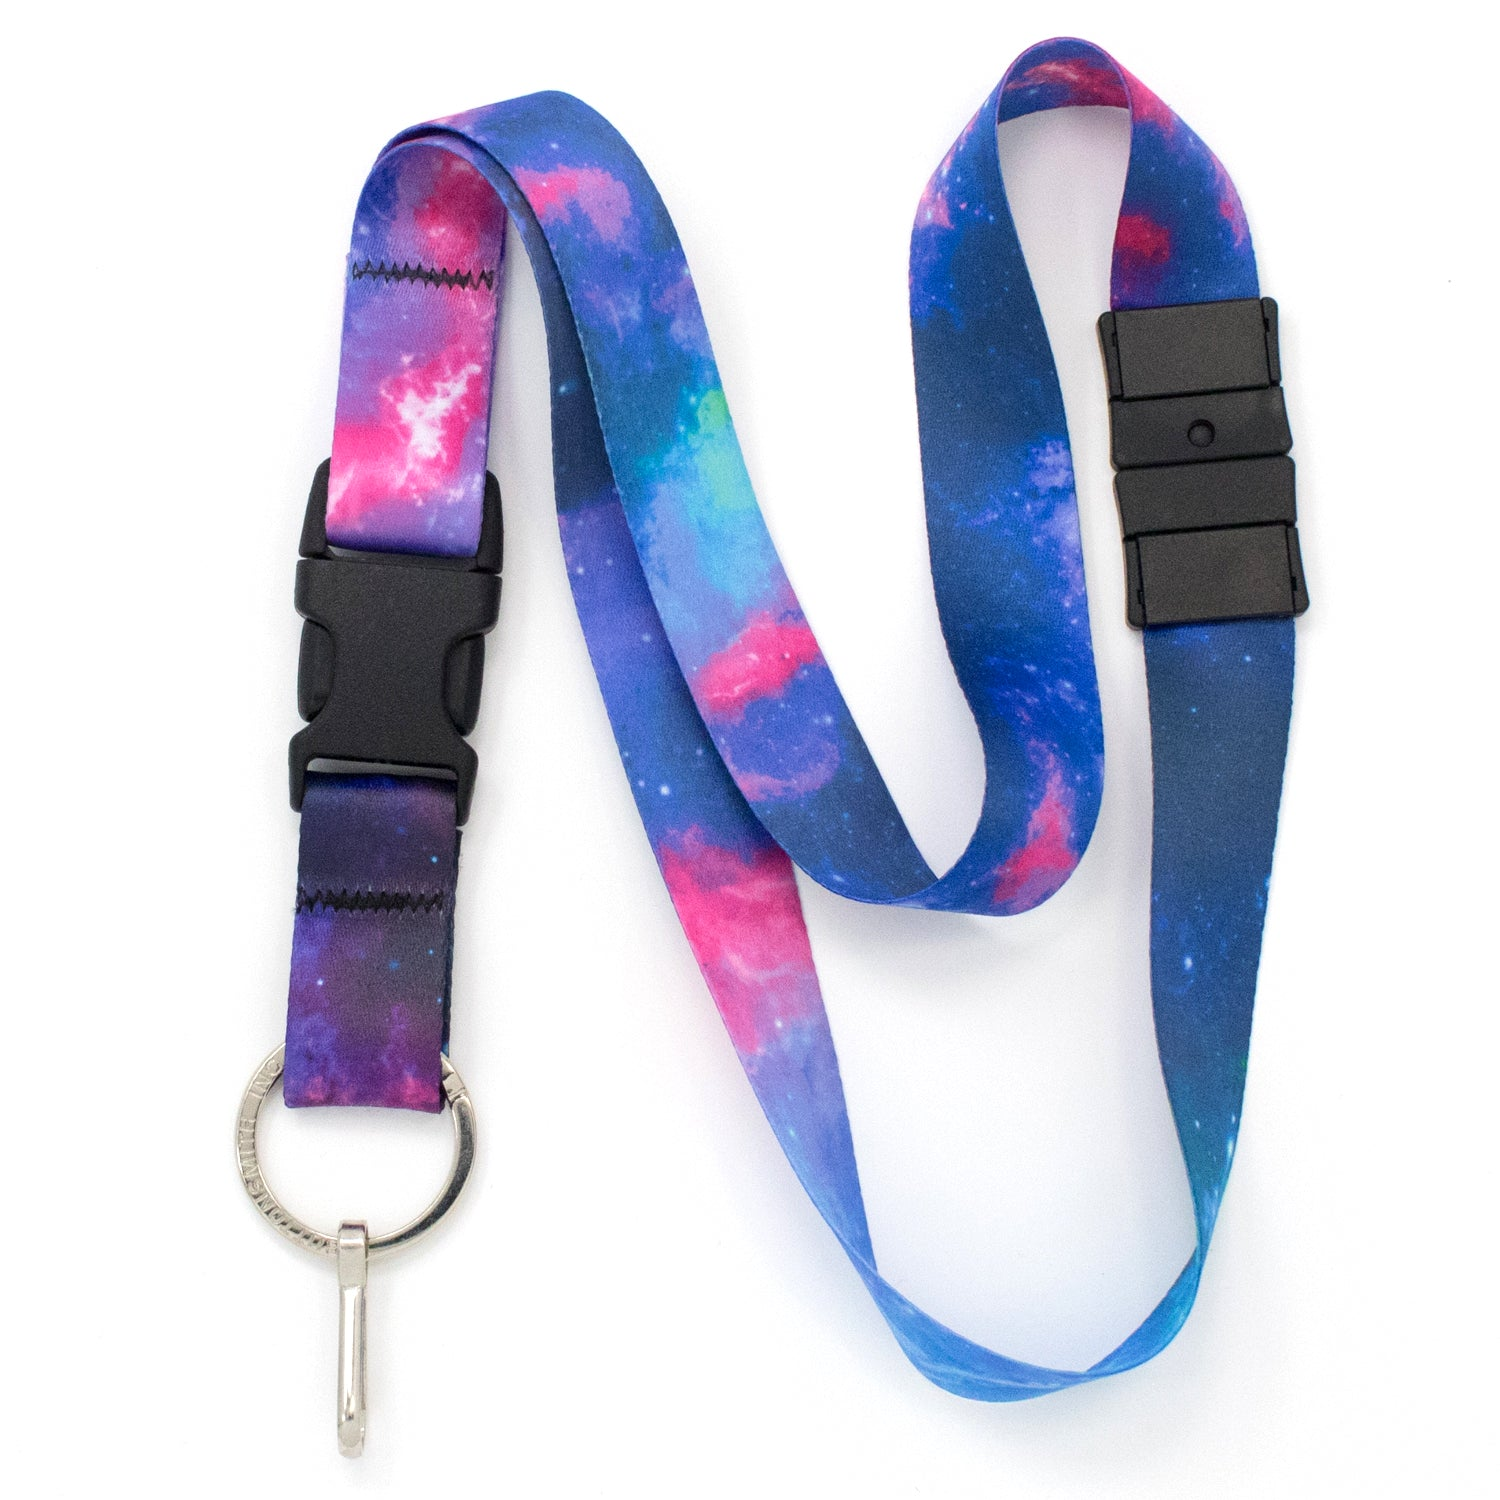 Buttonsmith Nebula Breakaway Lanyard - Made in USA